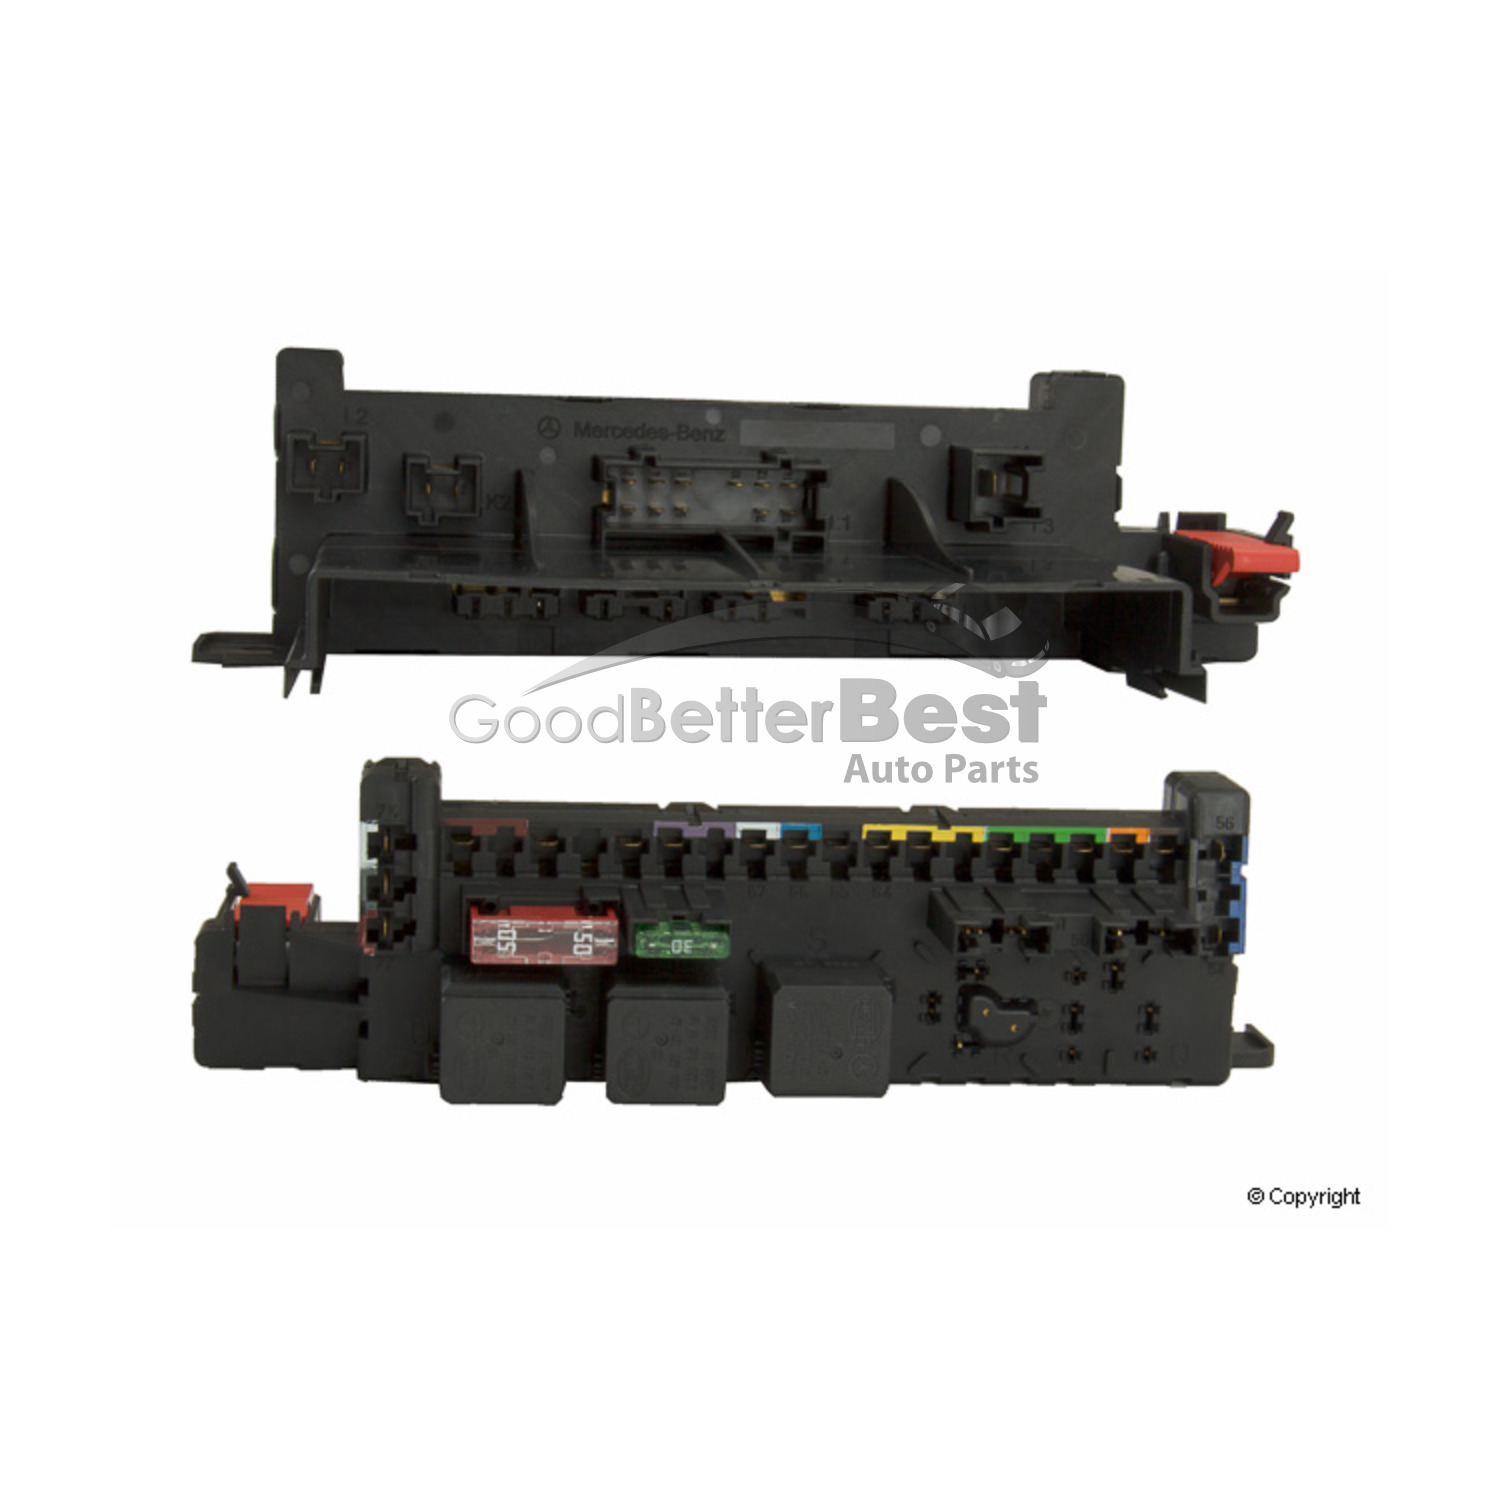 New Oe Supplier Fuse Box Rear 0025452201 Mercedes Mb Ebay Knowing Home